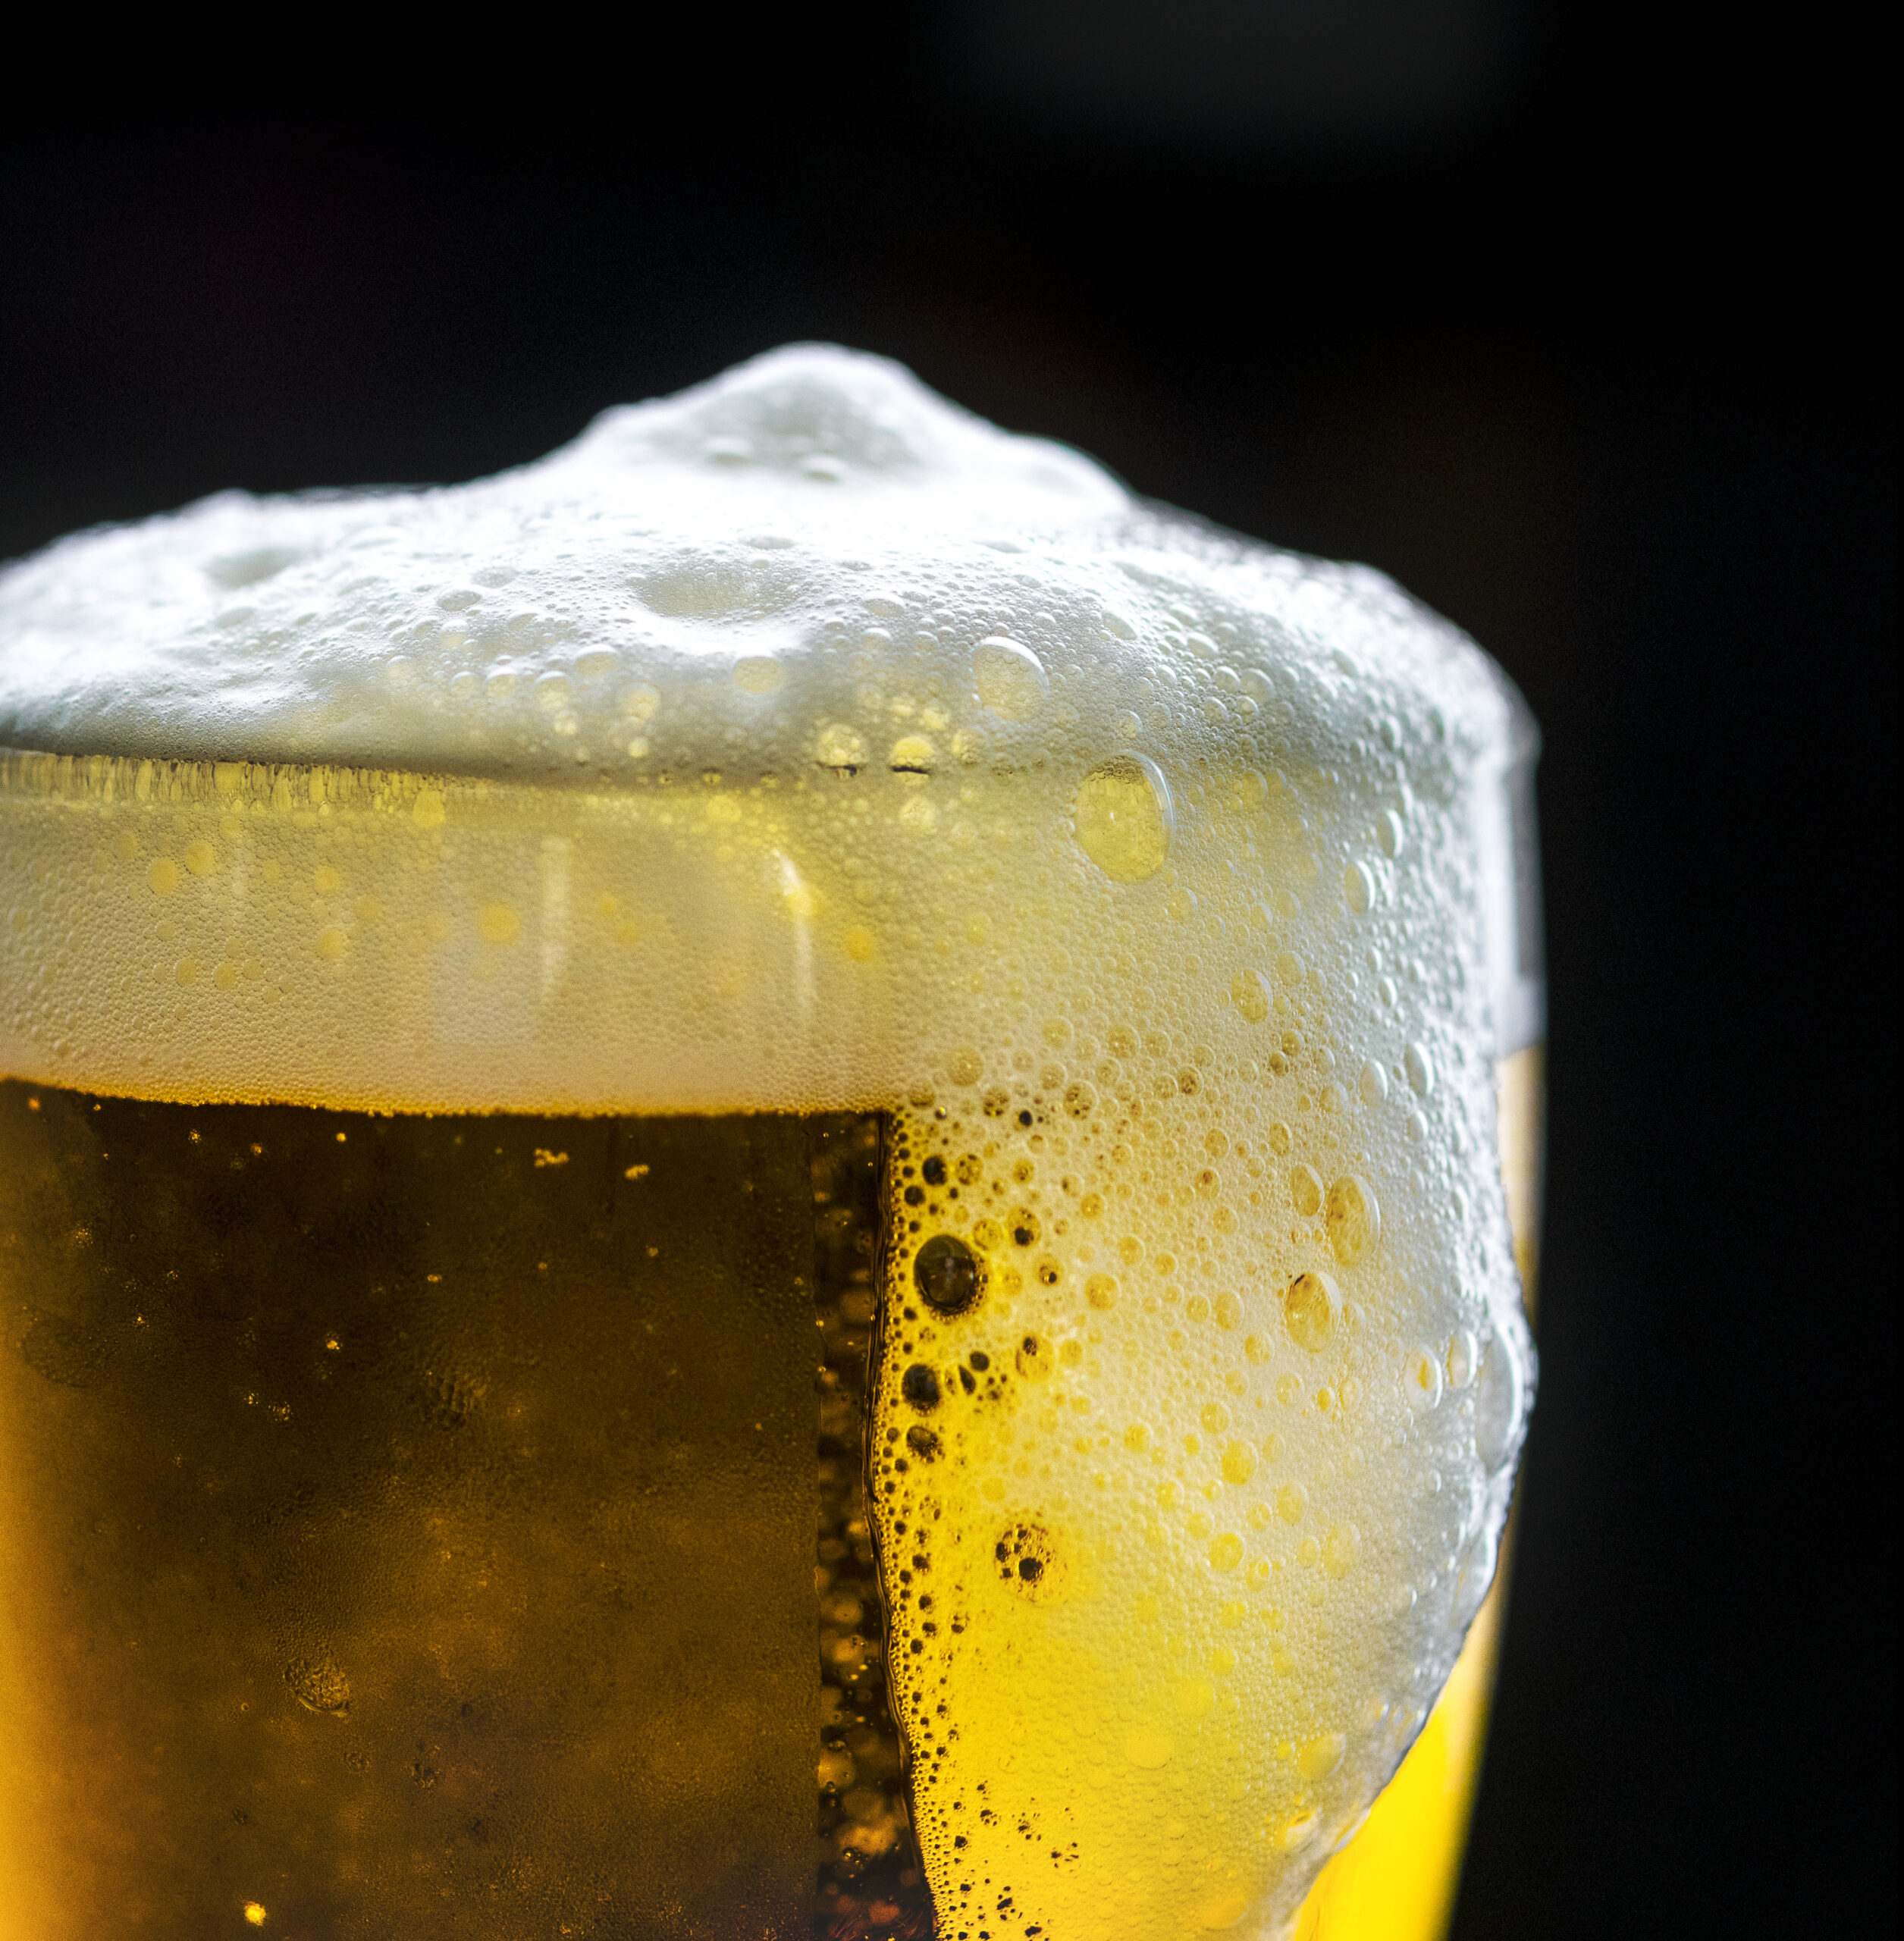 Iowa businesses see delayed start to home alcohol delivery